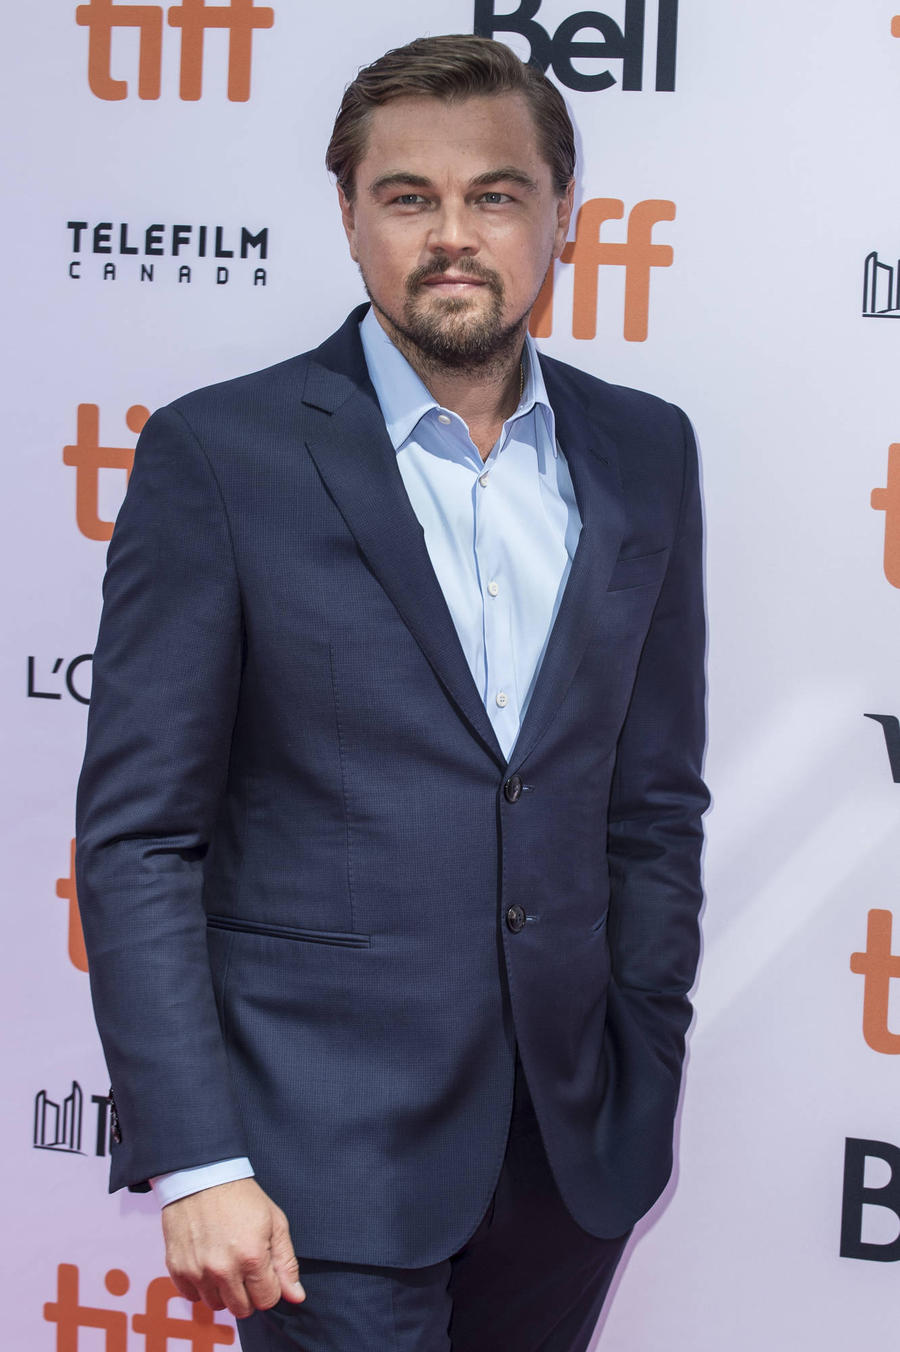 Leonardo Dicaprio Urged To Step Down From Un Role By Charity Boss